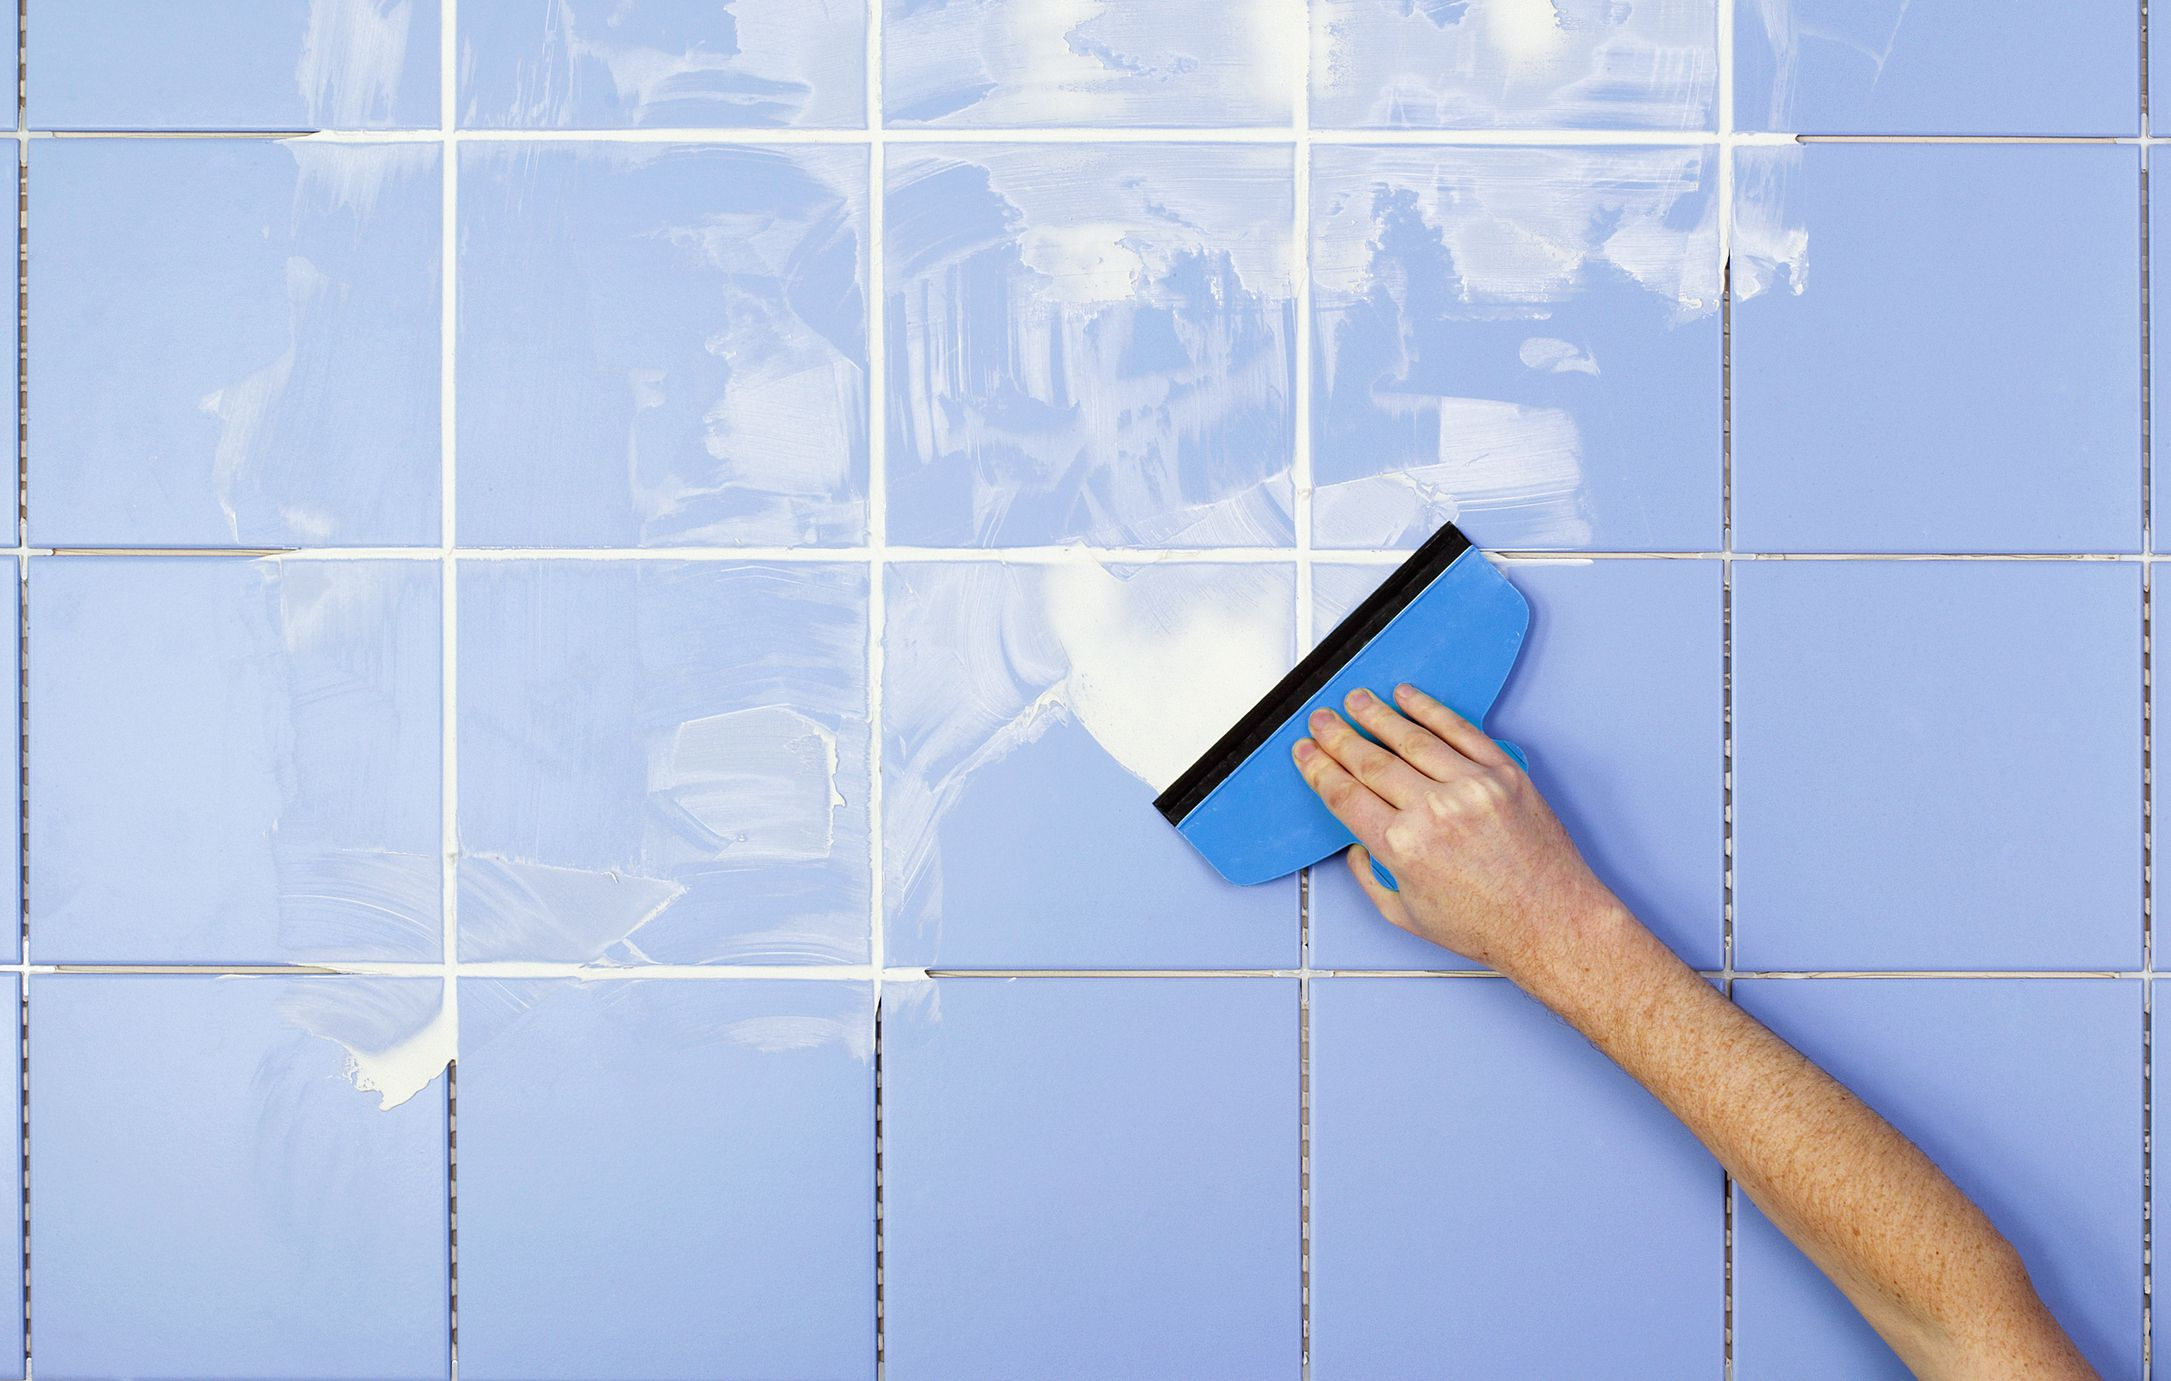 How to grout ceramic wall tile 5 top tips for using a rubber grout float for tile dailygadgetfo Gallery